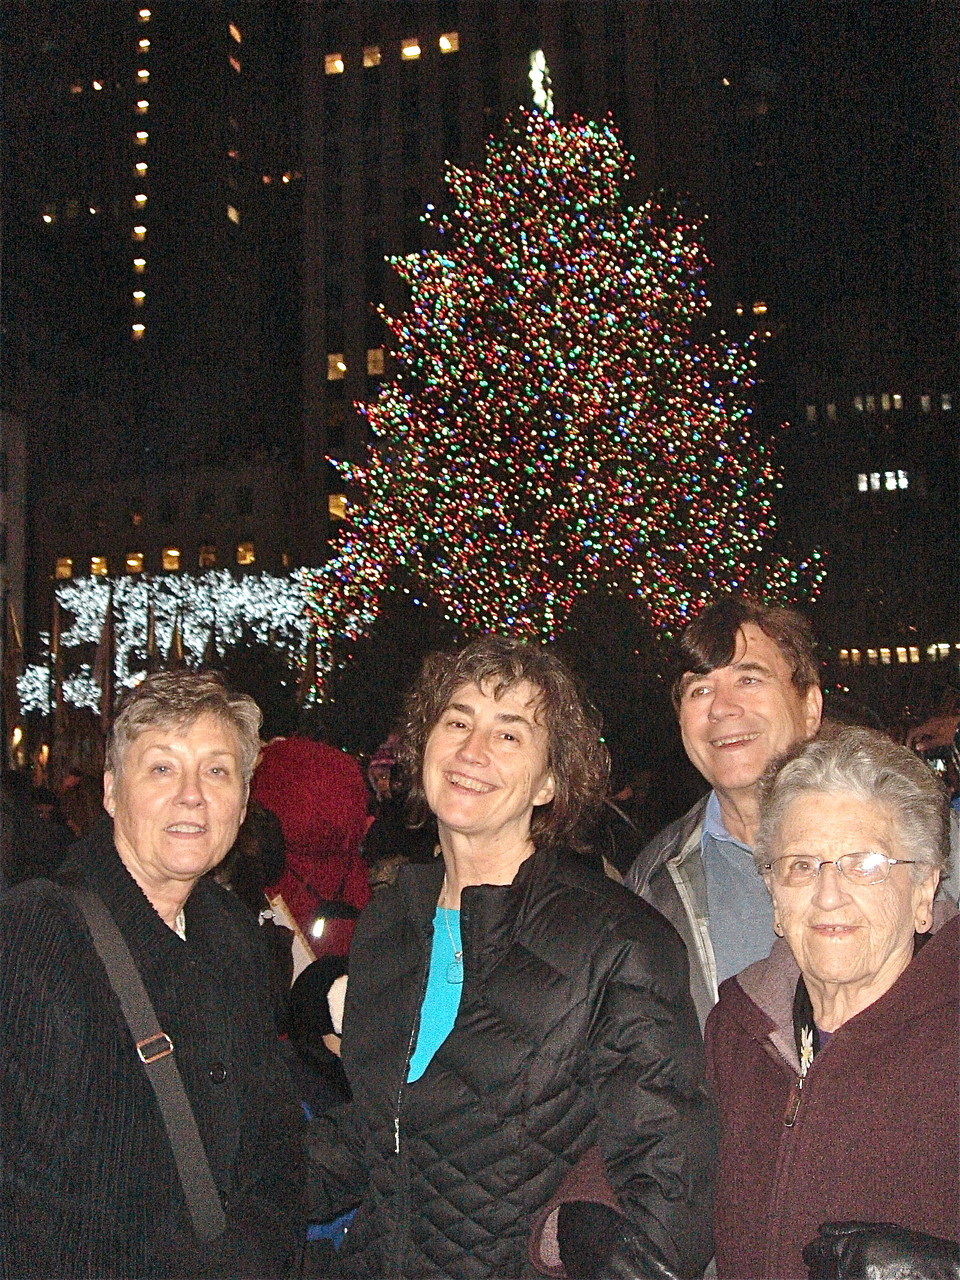 Cindy, Ann, John, & Mary Lou Wagner at the Rockefeller Center Xmas Tree